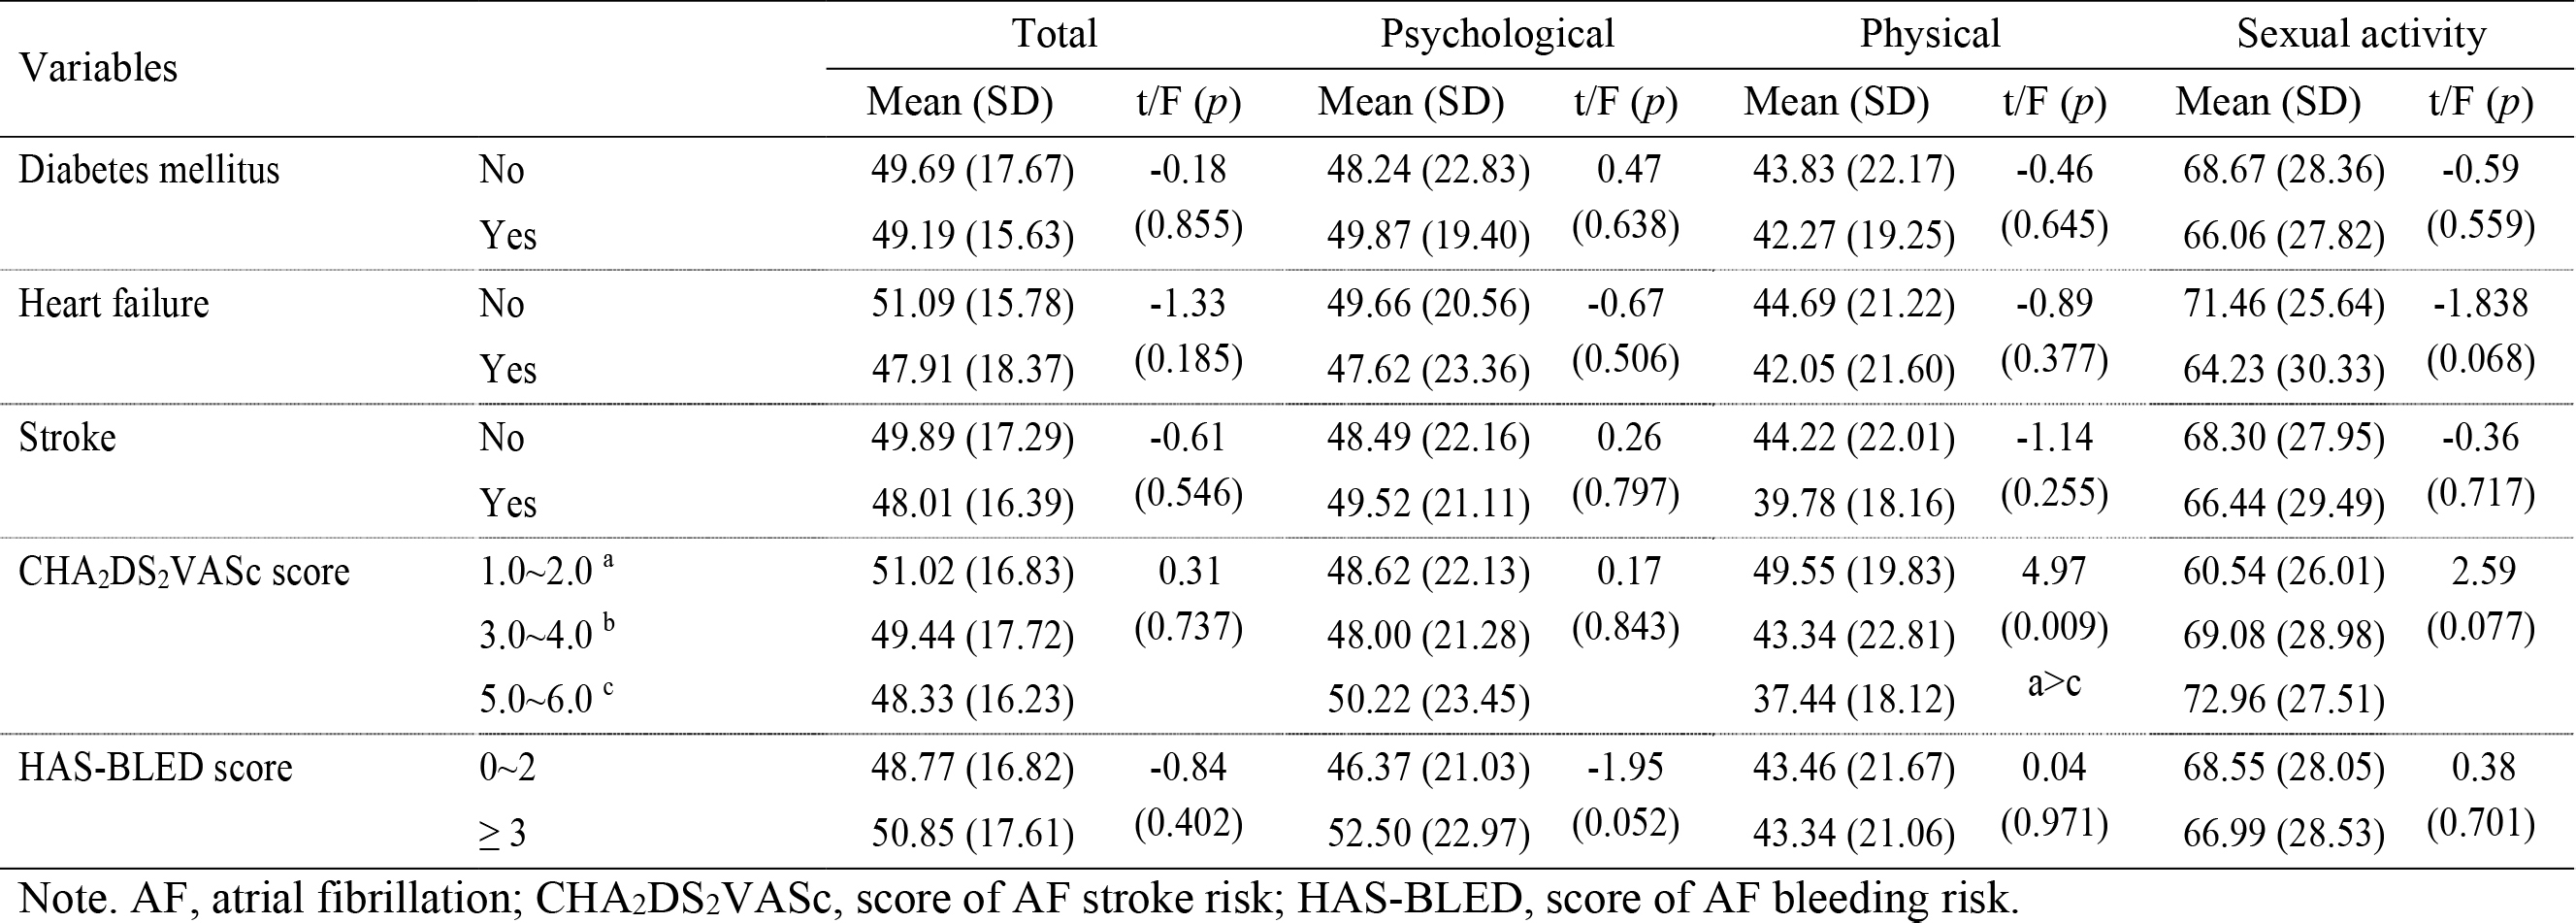 Differences of Health-related Quality of Life depending on Participant Characteristics (N = 205)